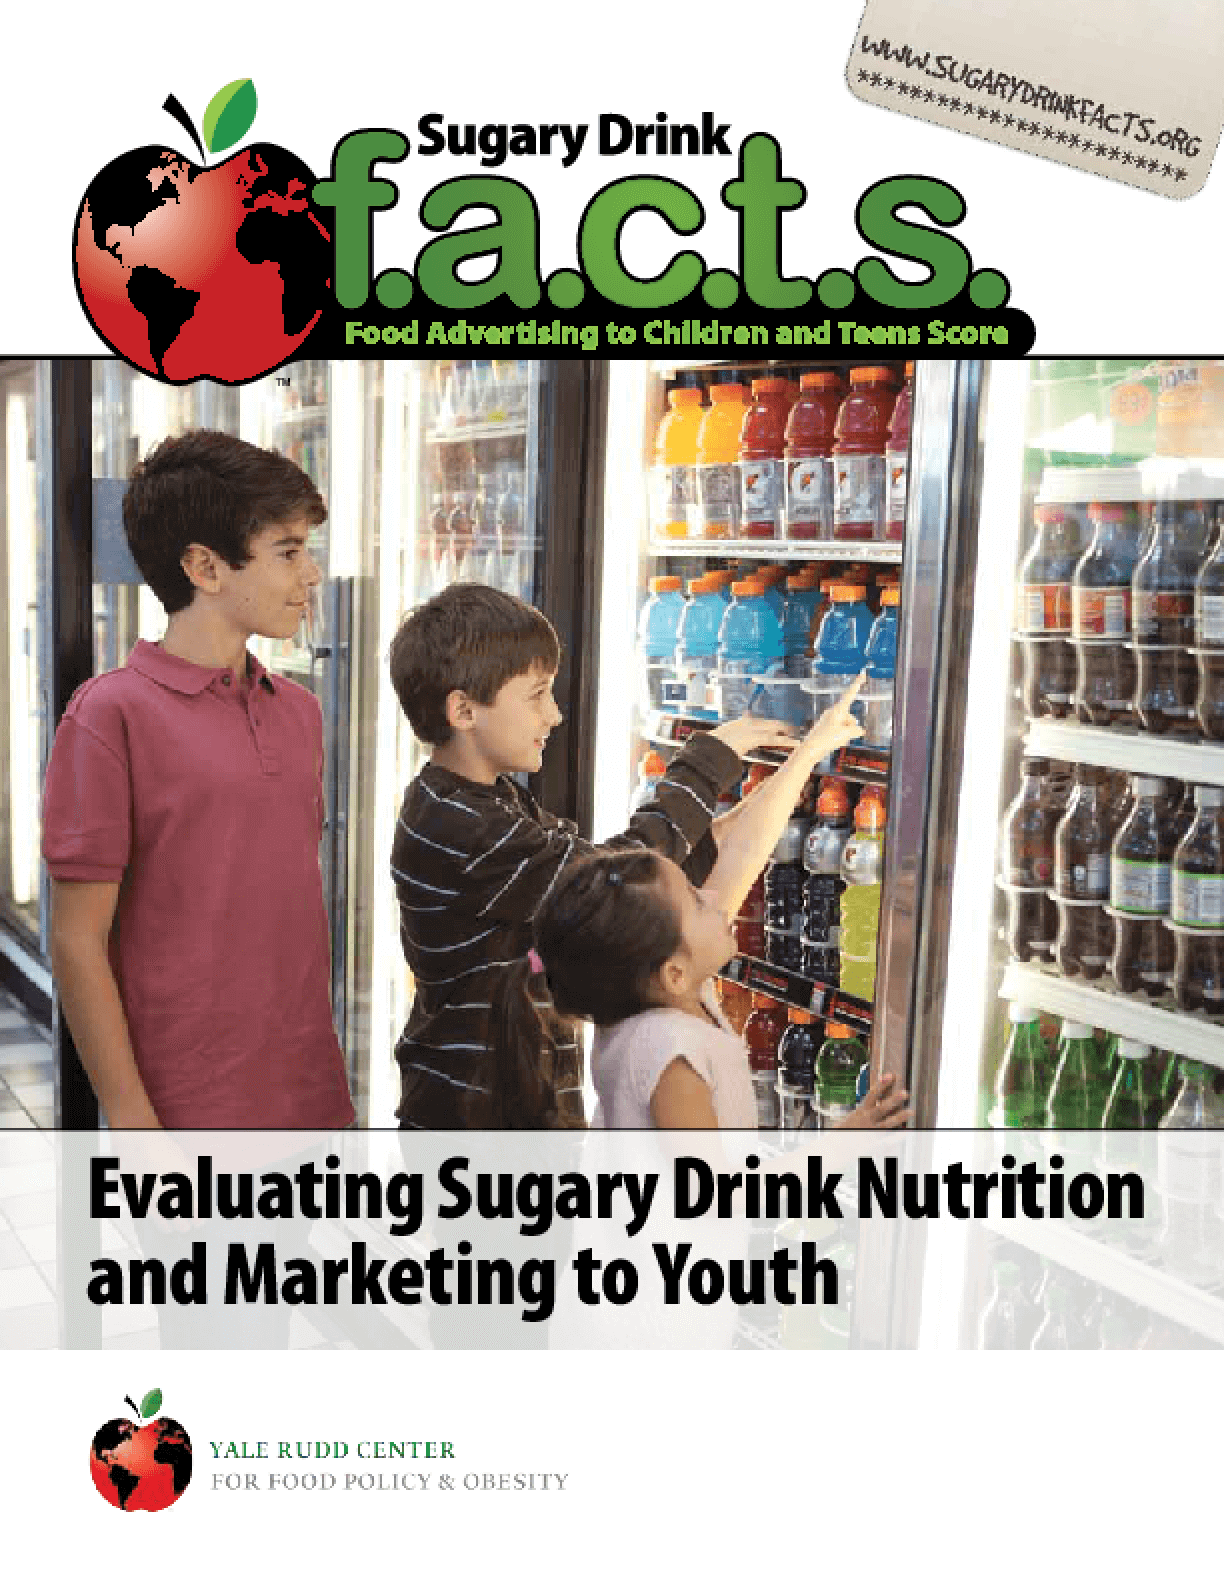 Sugary Drinks FACTS Report: Evaluating Sugary Drink Nutrition and Marketing to Youth